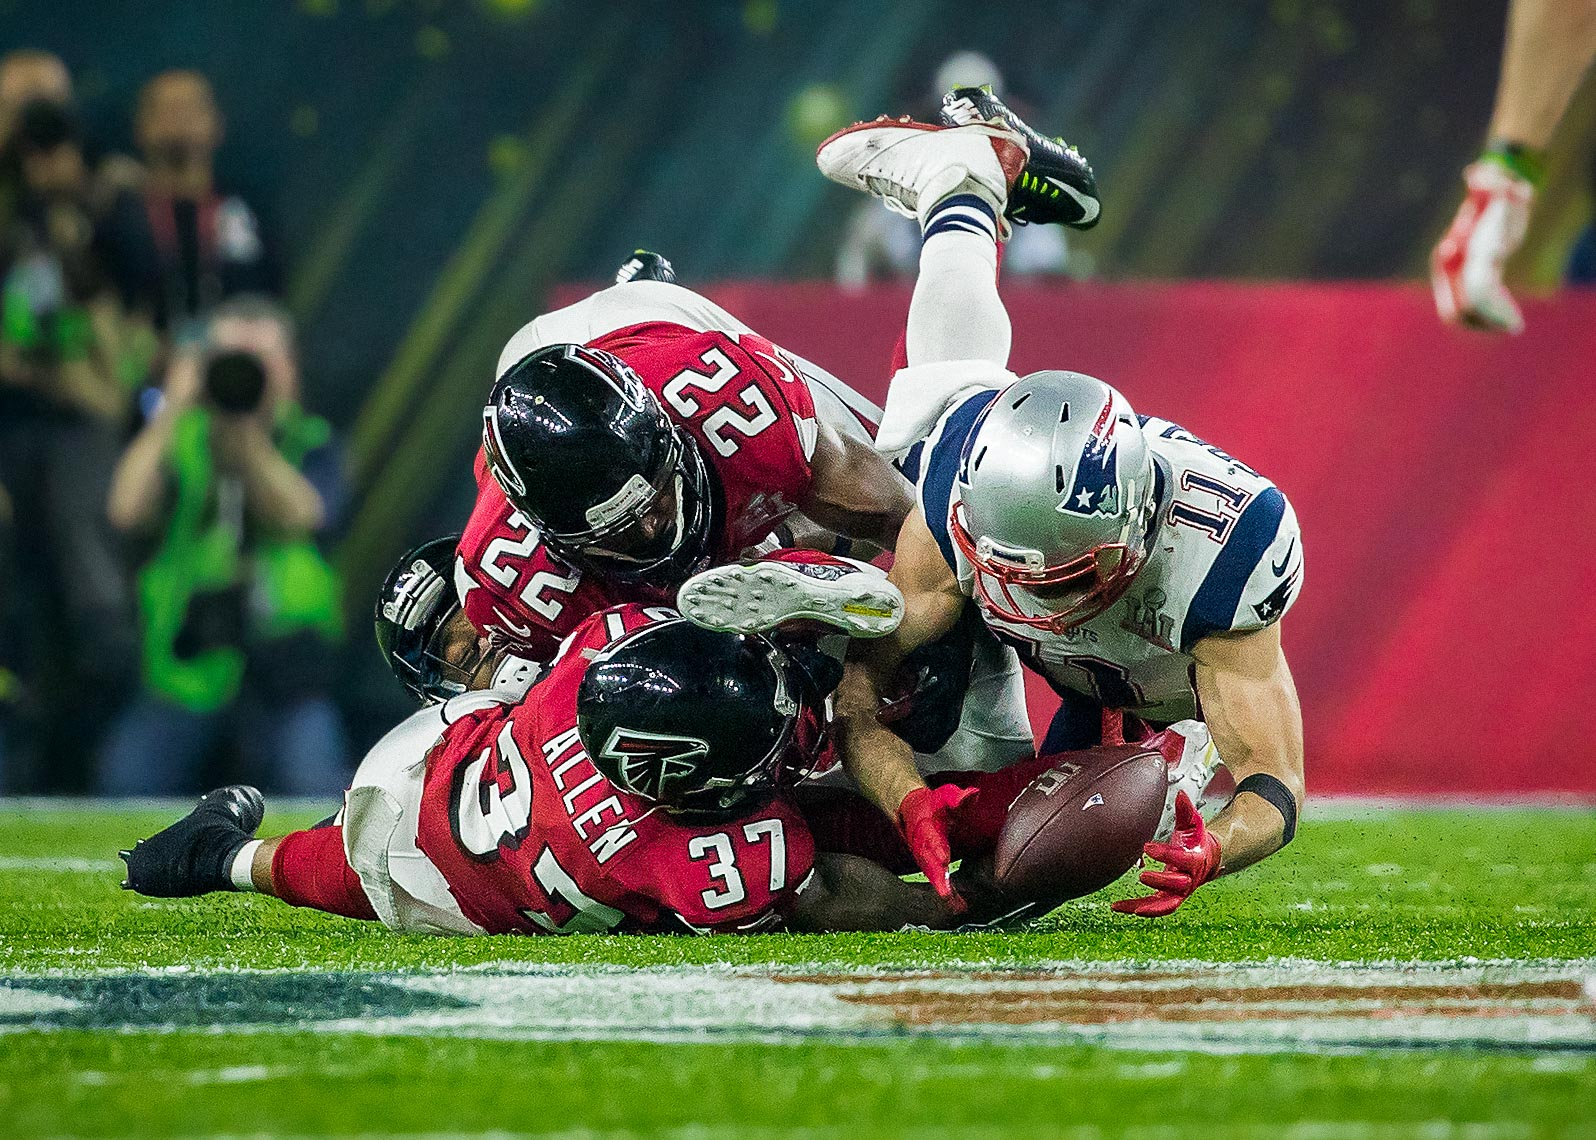 superbowl08  Best Super Bowl LI 51 photos between Atlanta Falcons and New England Patriots Julian Edelman the catch